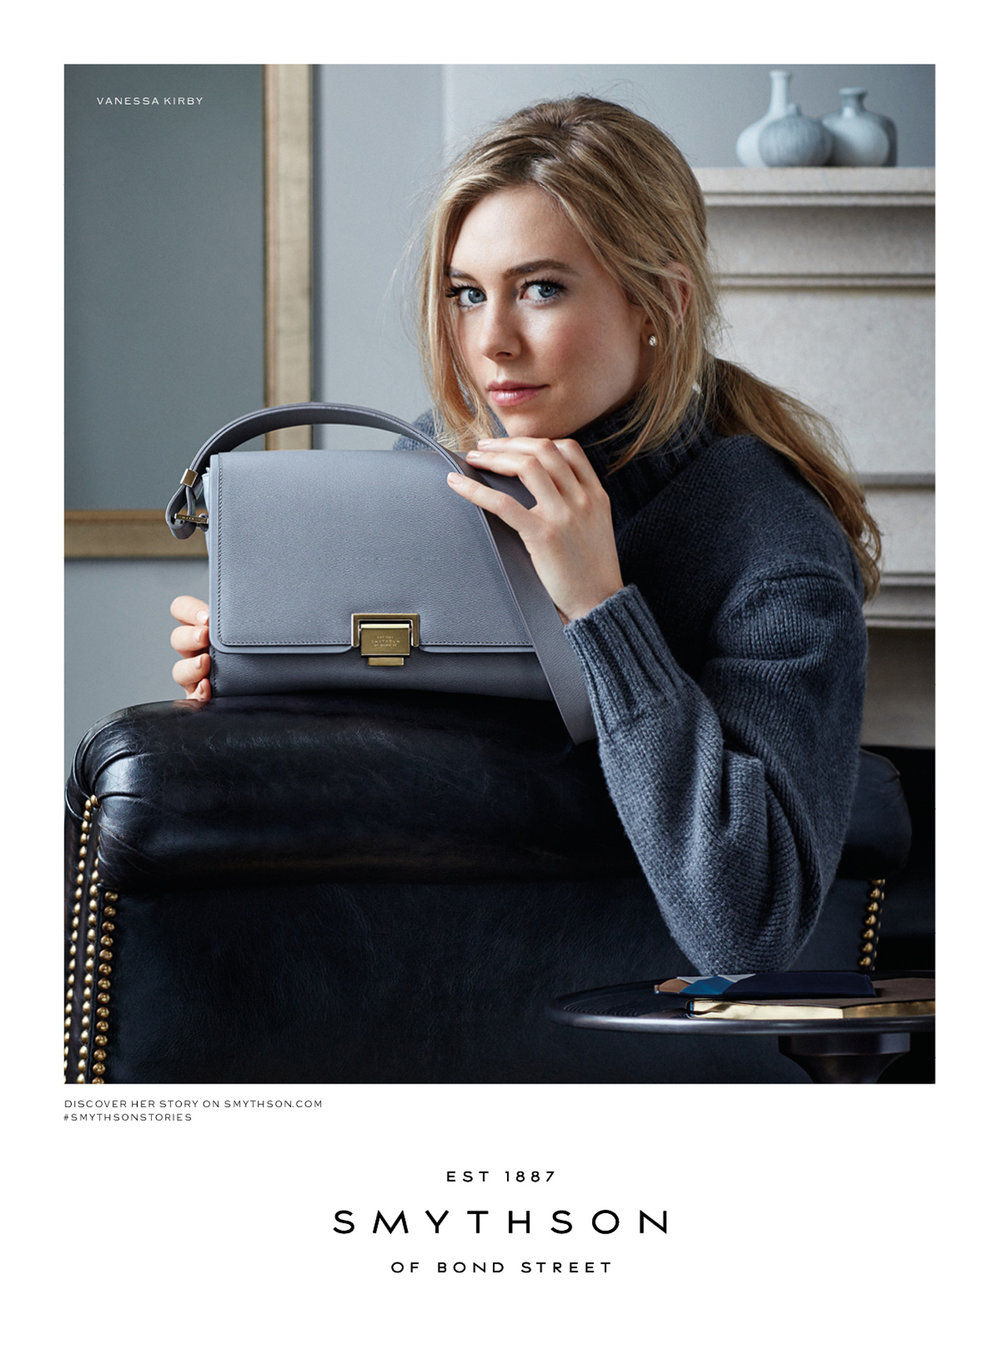 21-icon-artist-management-production-SMYTHSON SP CAMPAIGN.jpg